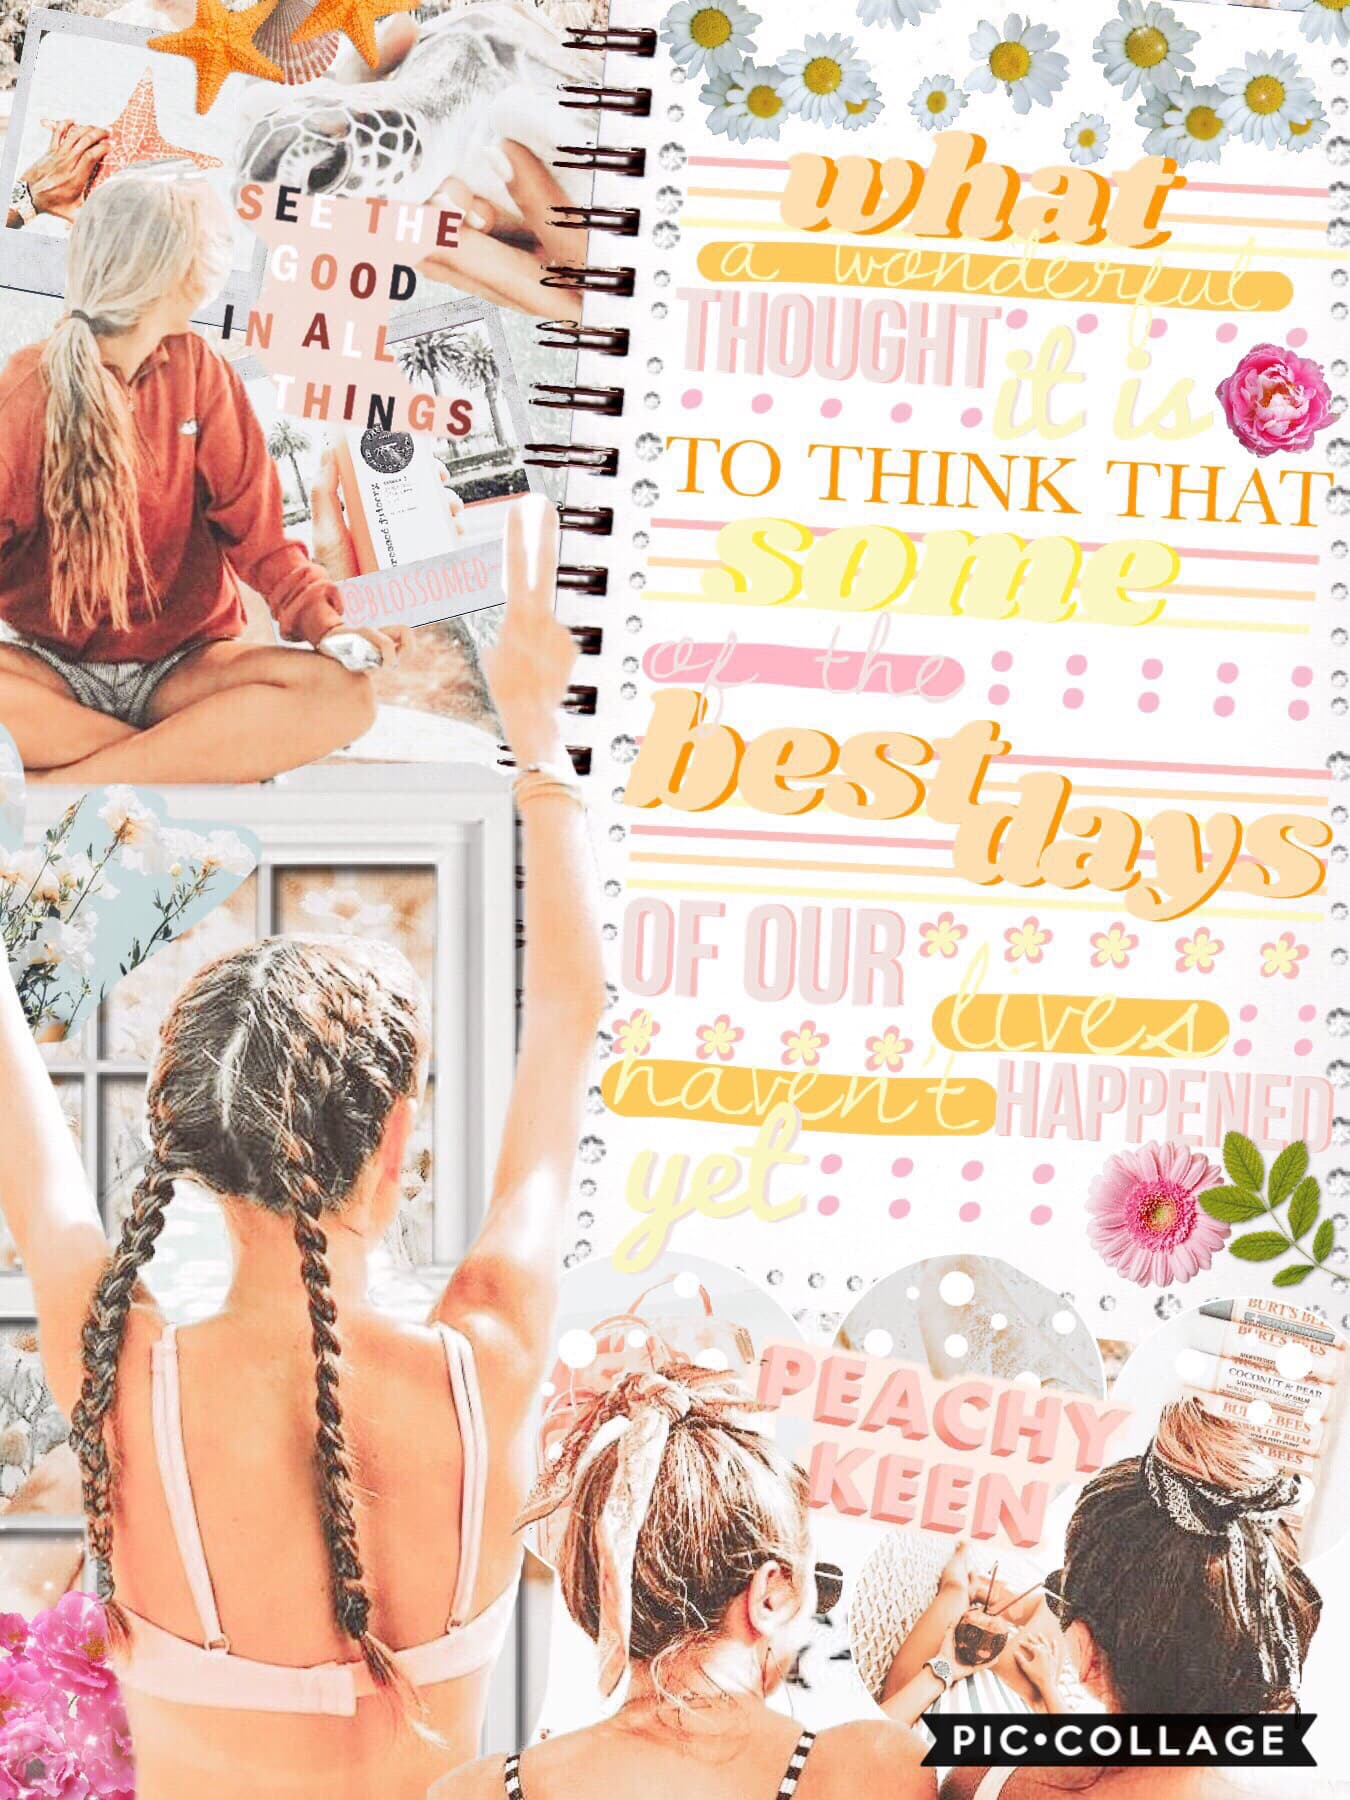 hi everyone!! ⭐️ hope you are all well! so this is my collage for my assignment in English yay I think I did really well🎊💖 this is one of my fave collages QOTD: what are you wearing atm? aotd: hoodie and jeanss☺️